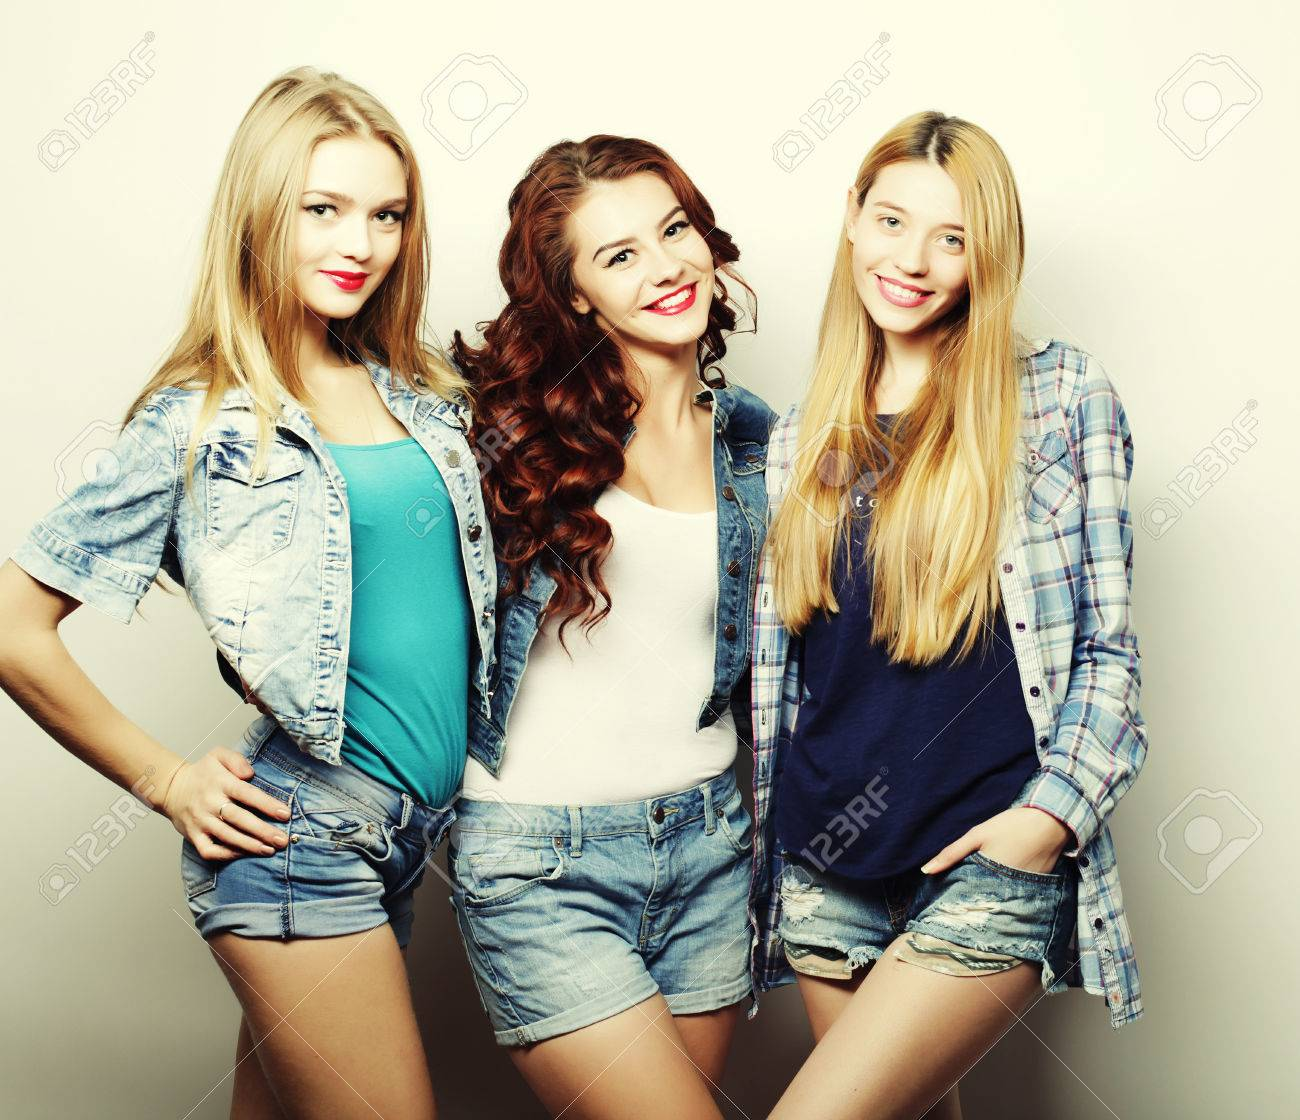 three best friends posing in studio wearing summer style outfit